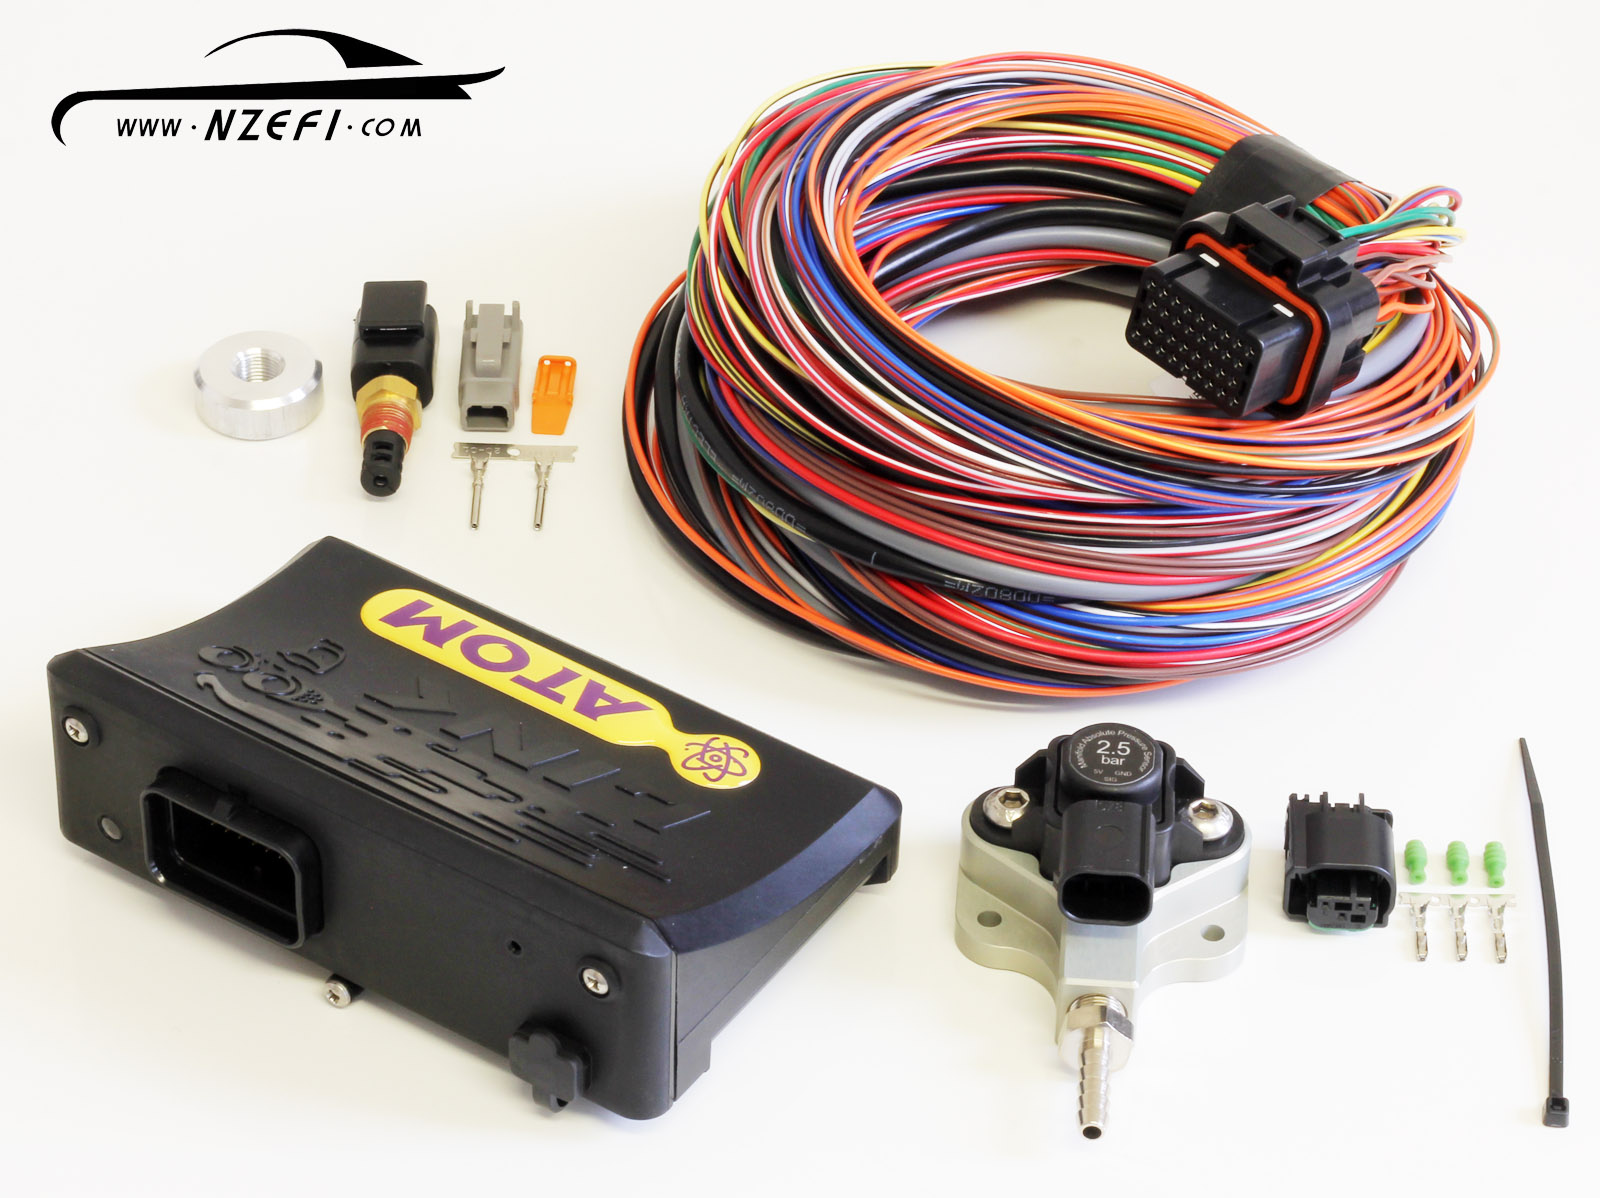 Link G4 Atom II Essentials Package 2 5 Bar MAP Sensor 2 5 m Loom link g4 atom ii essentials package nzefi performance tuning link g4 atom wiring diagram at mifinder.co